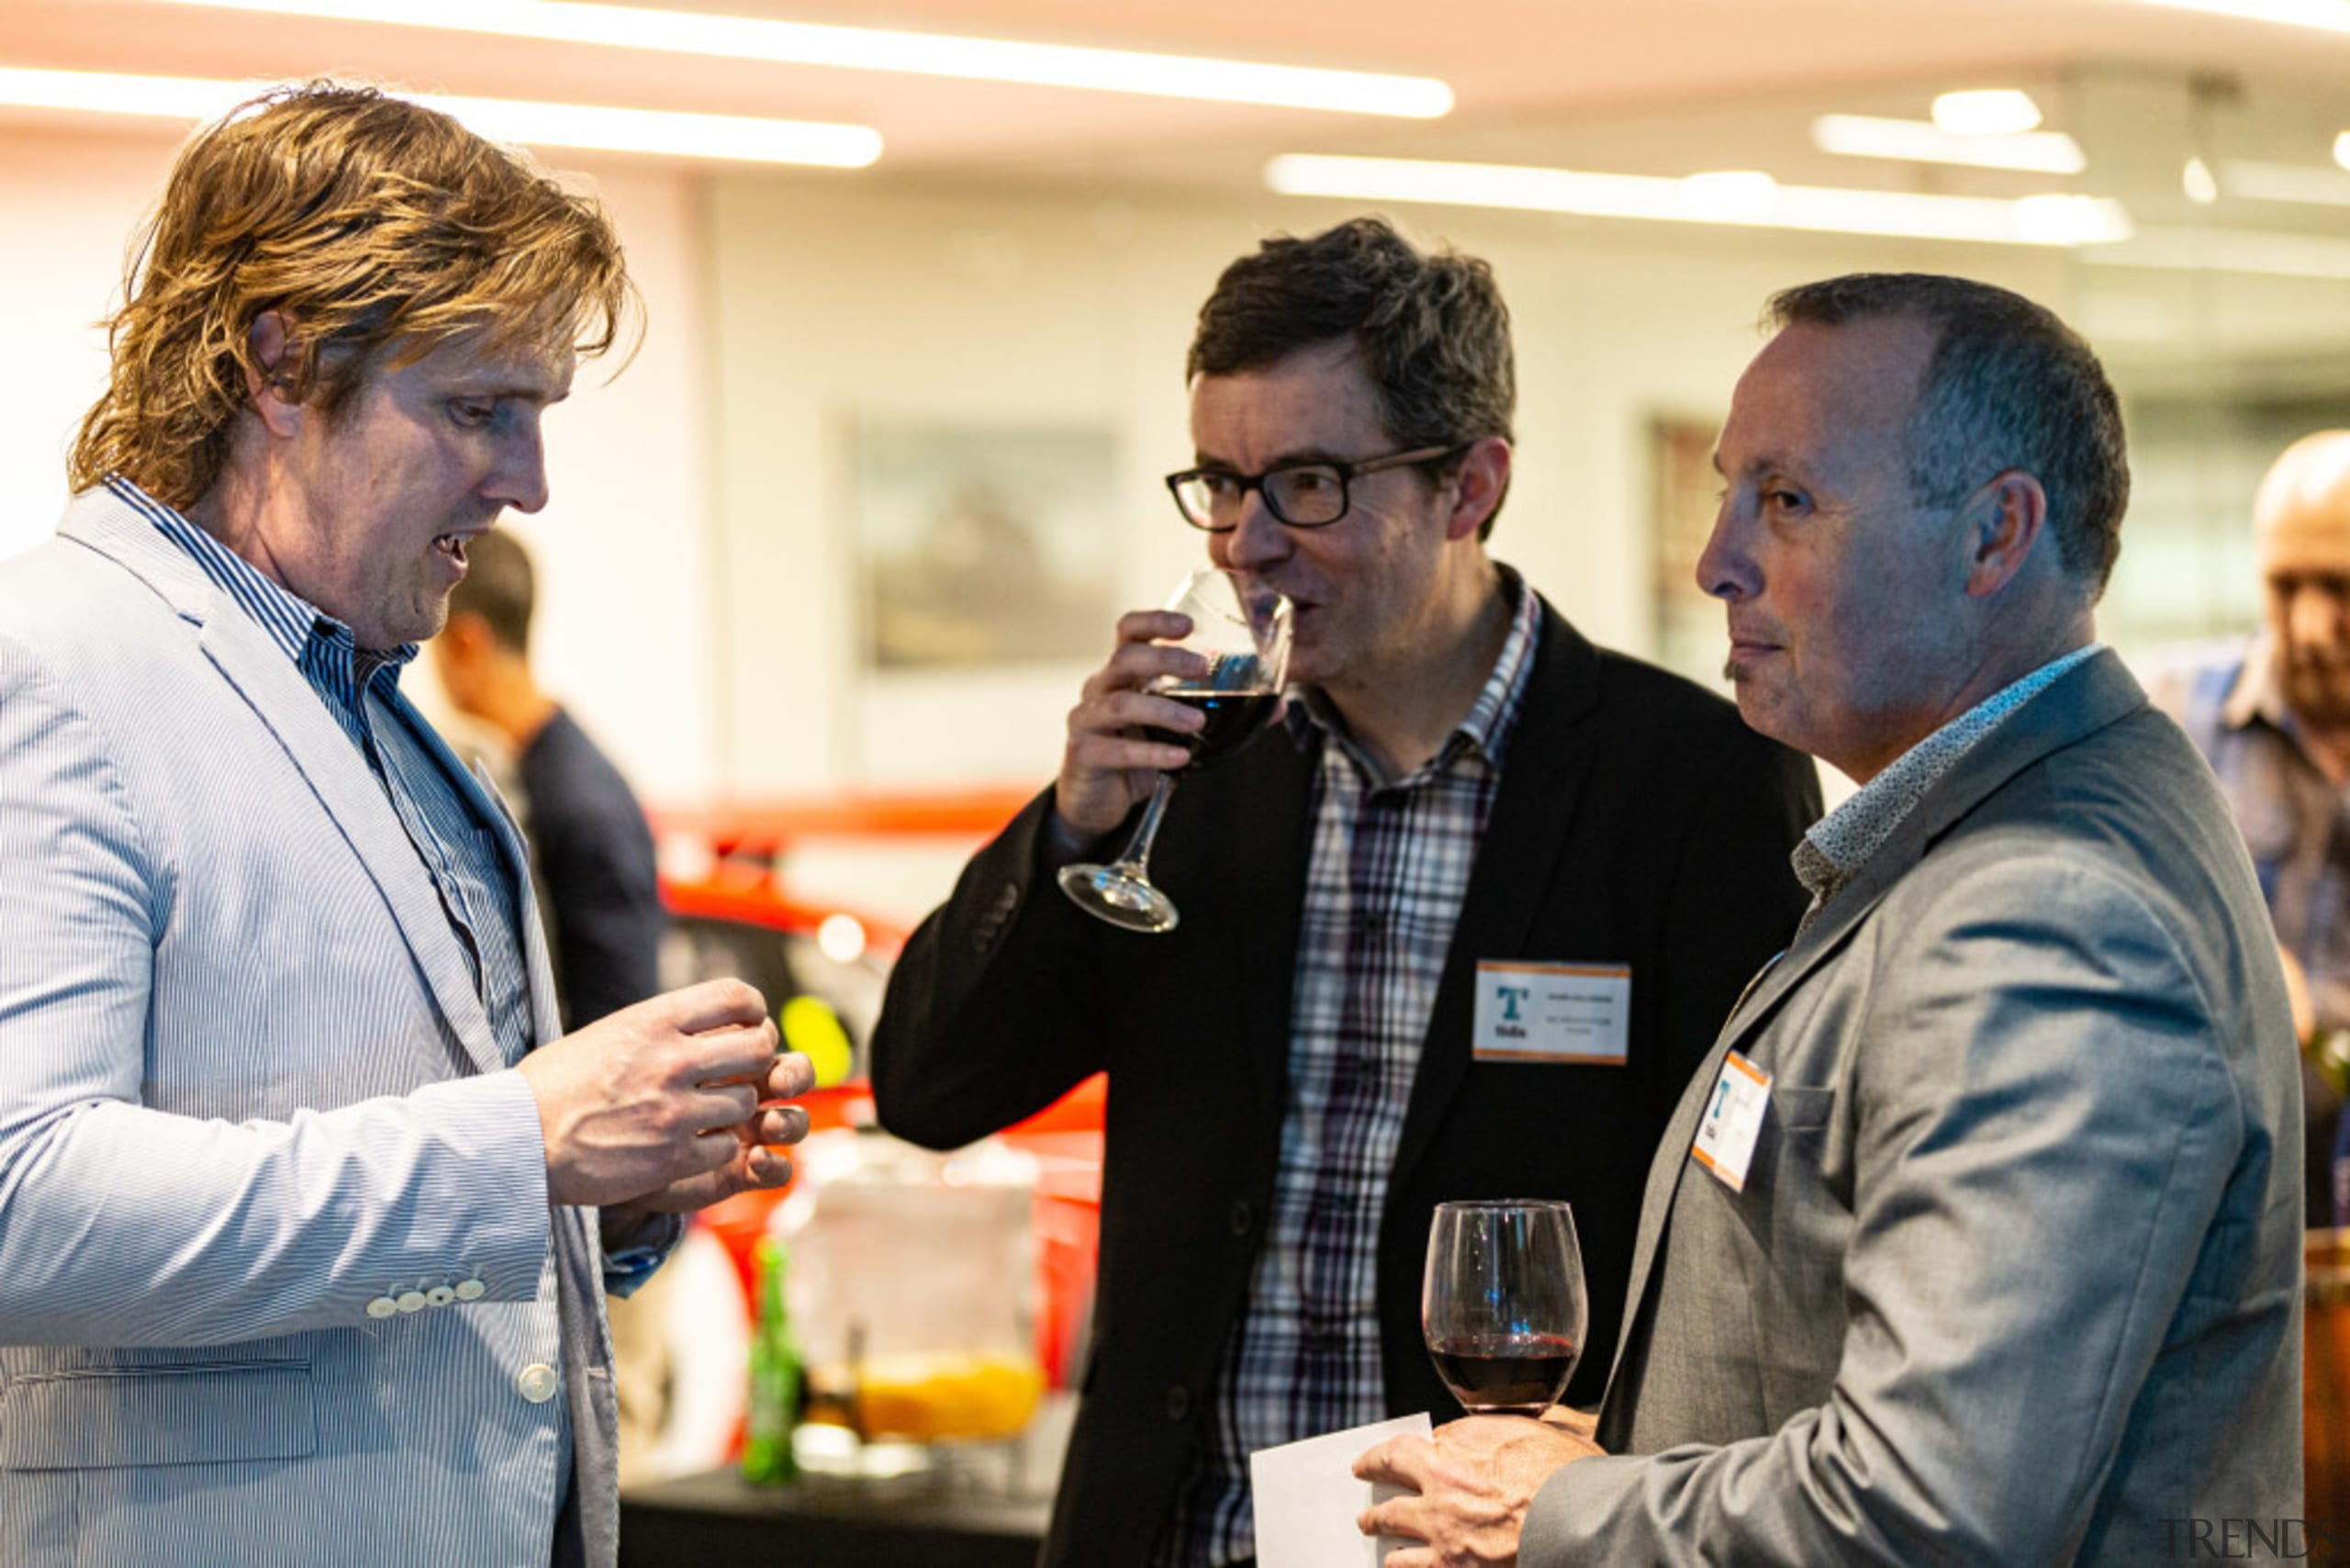 2019 TIDA New Zealand Homes presentation evening adaptation, community, conversation, customer, design, event, interaction